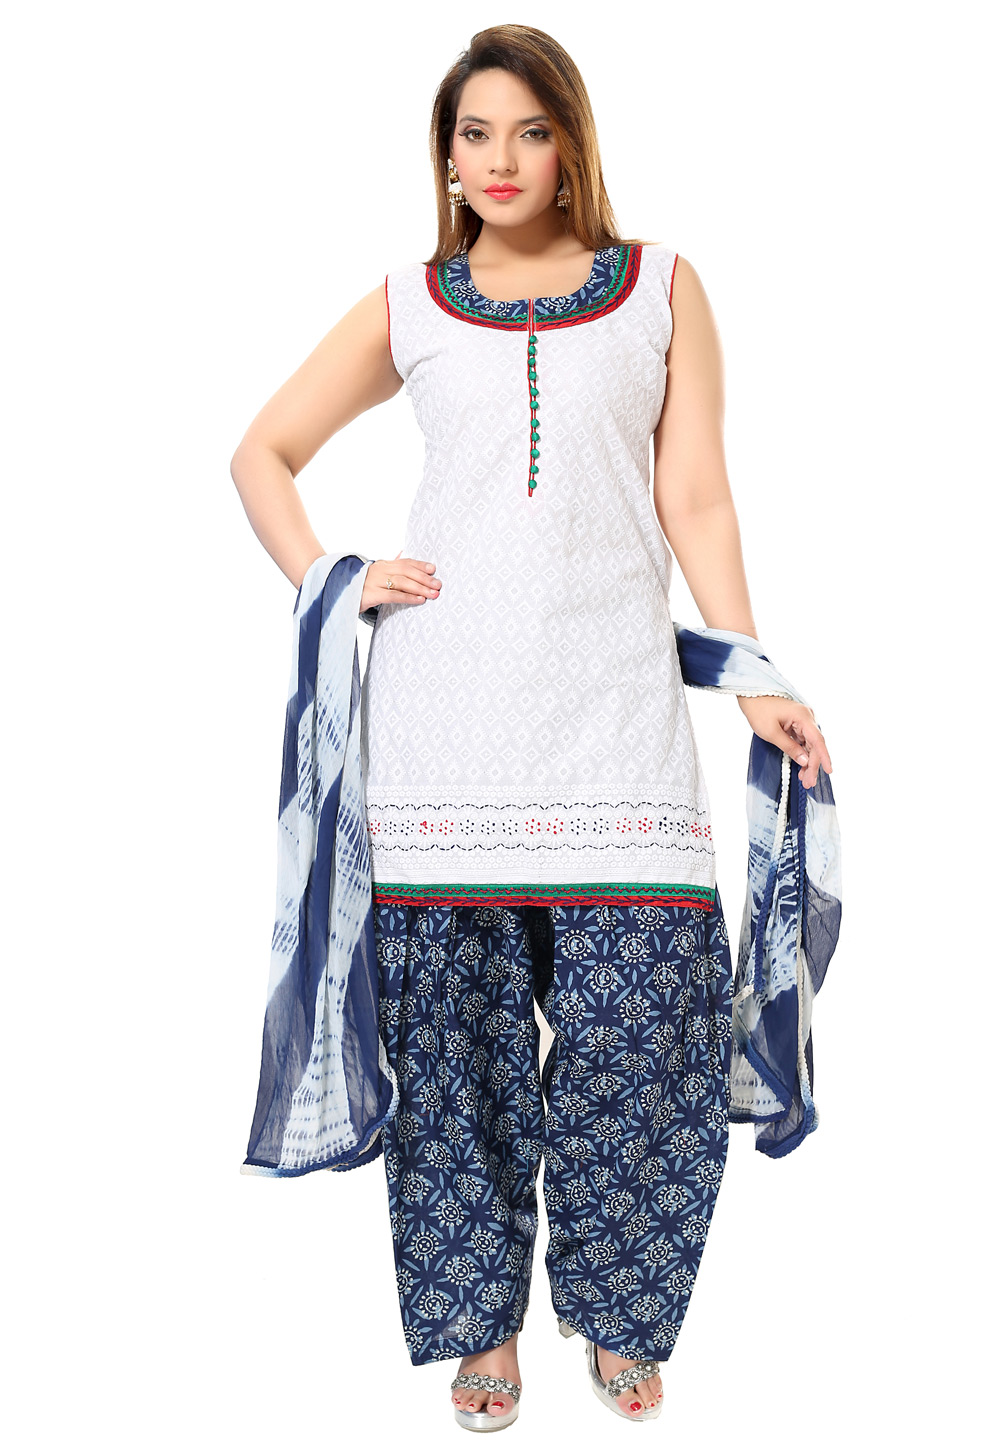 Off White Cotton Readymade Patiala Suit 194243